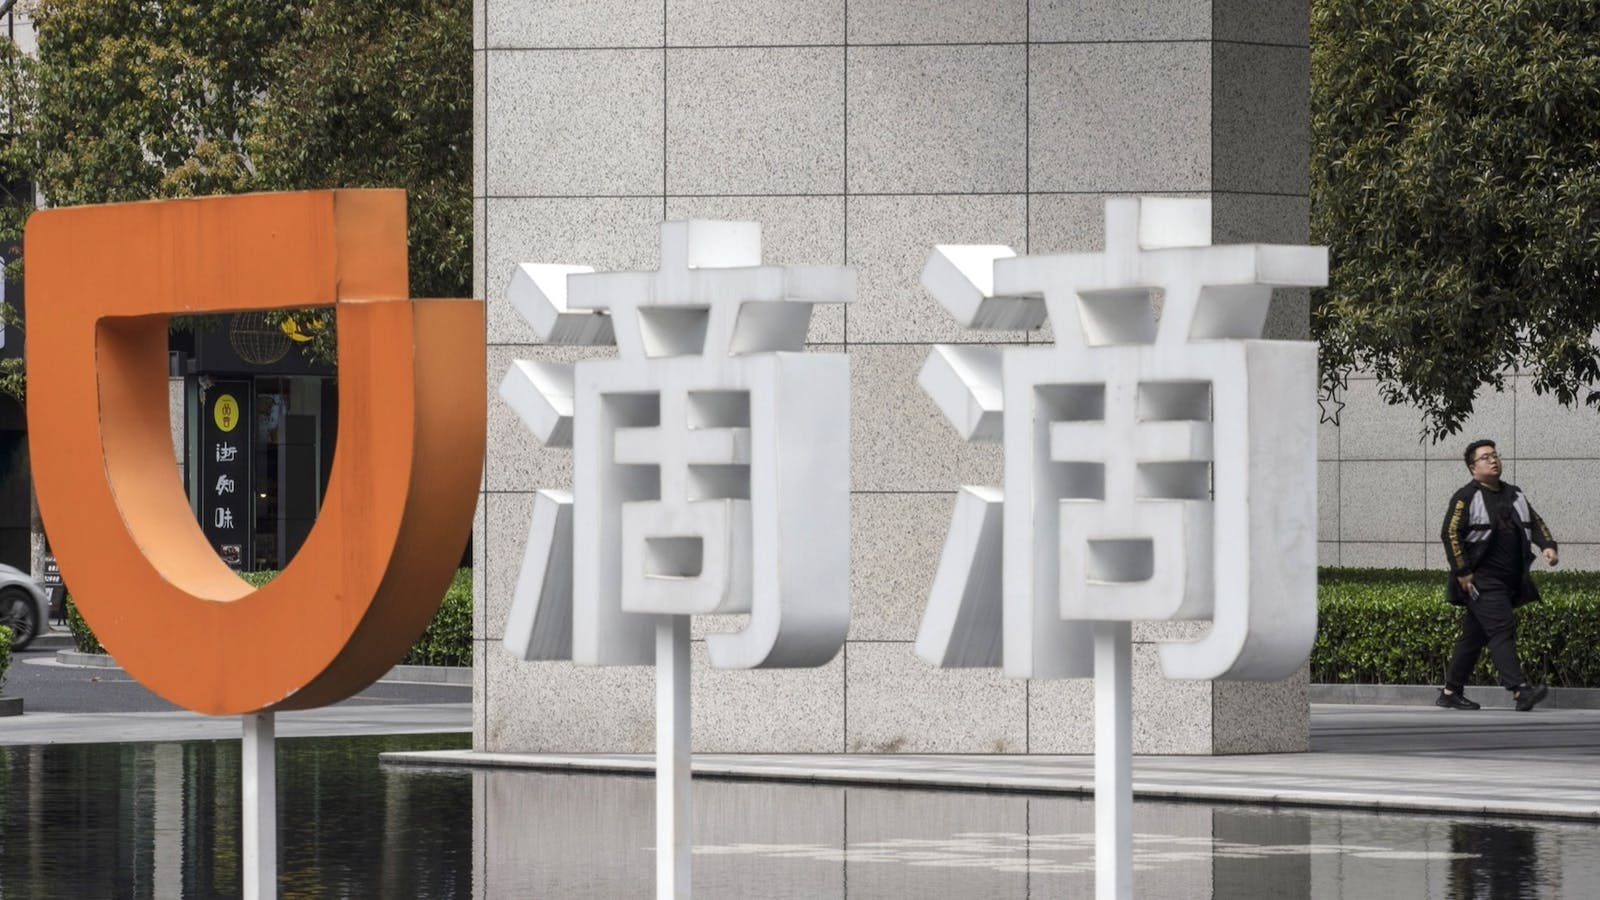 Didi's offices in Hangzhou, China. Photo: Bloomberg